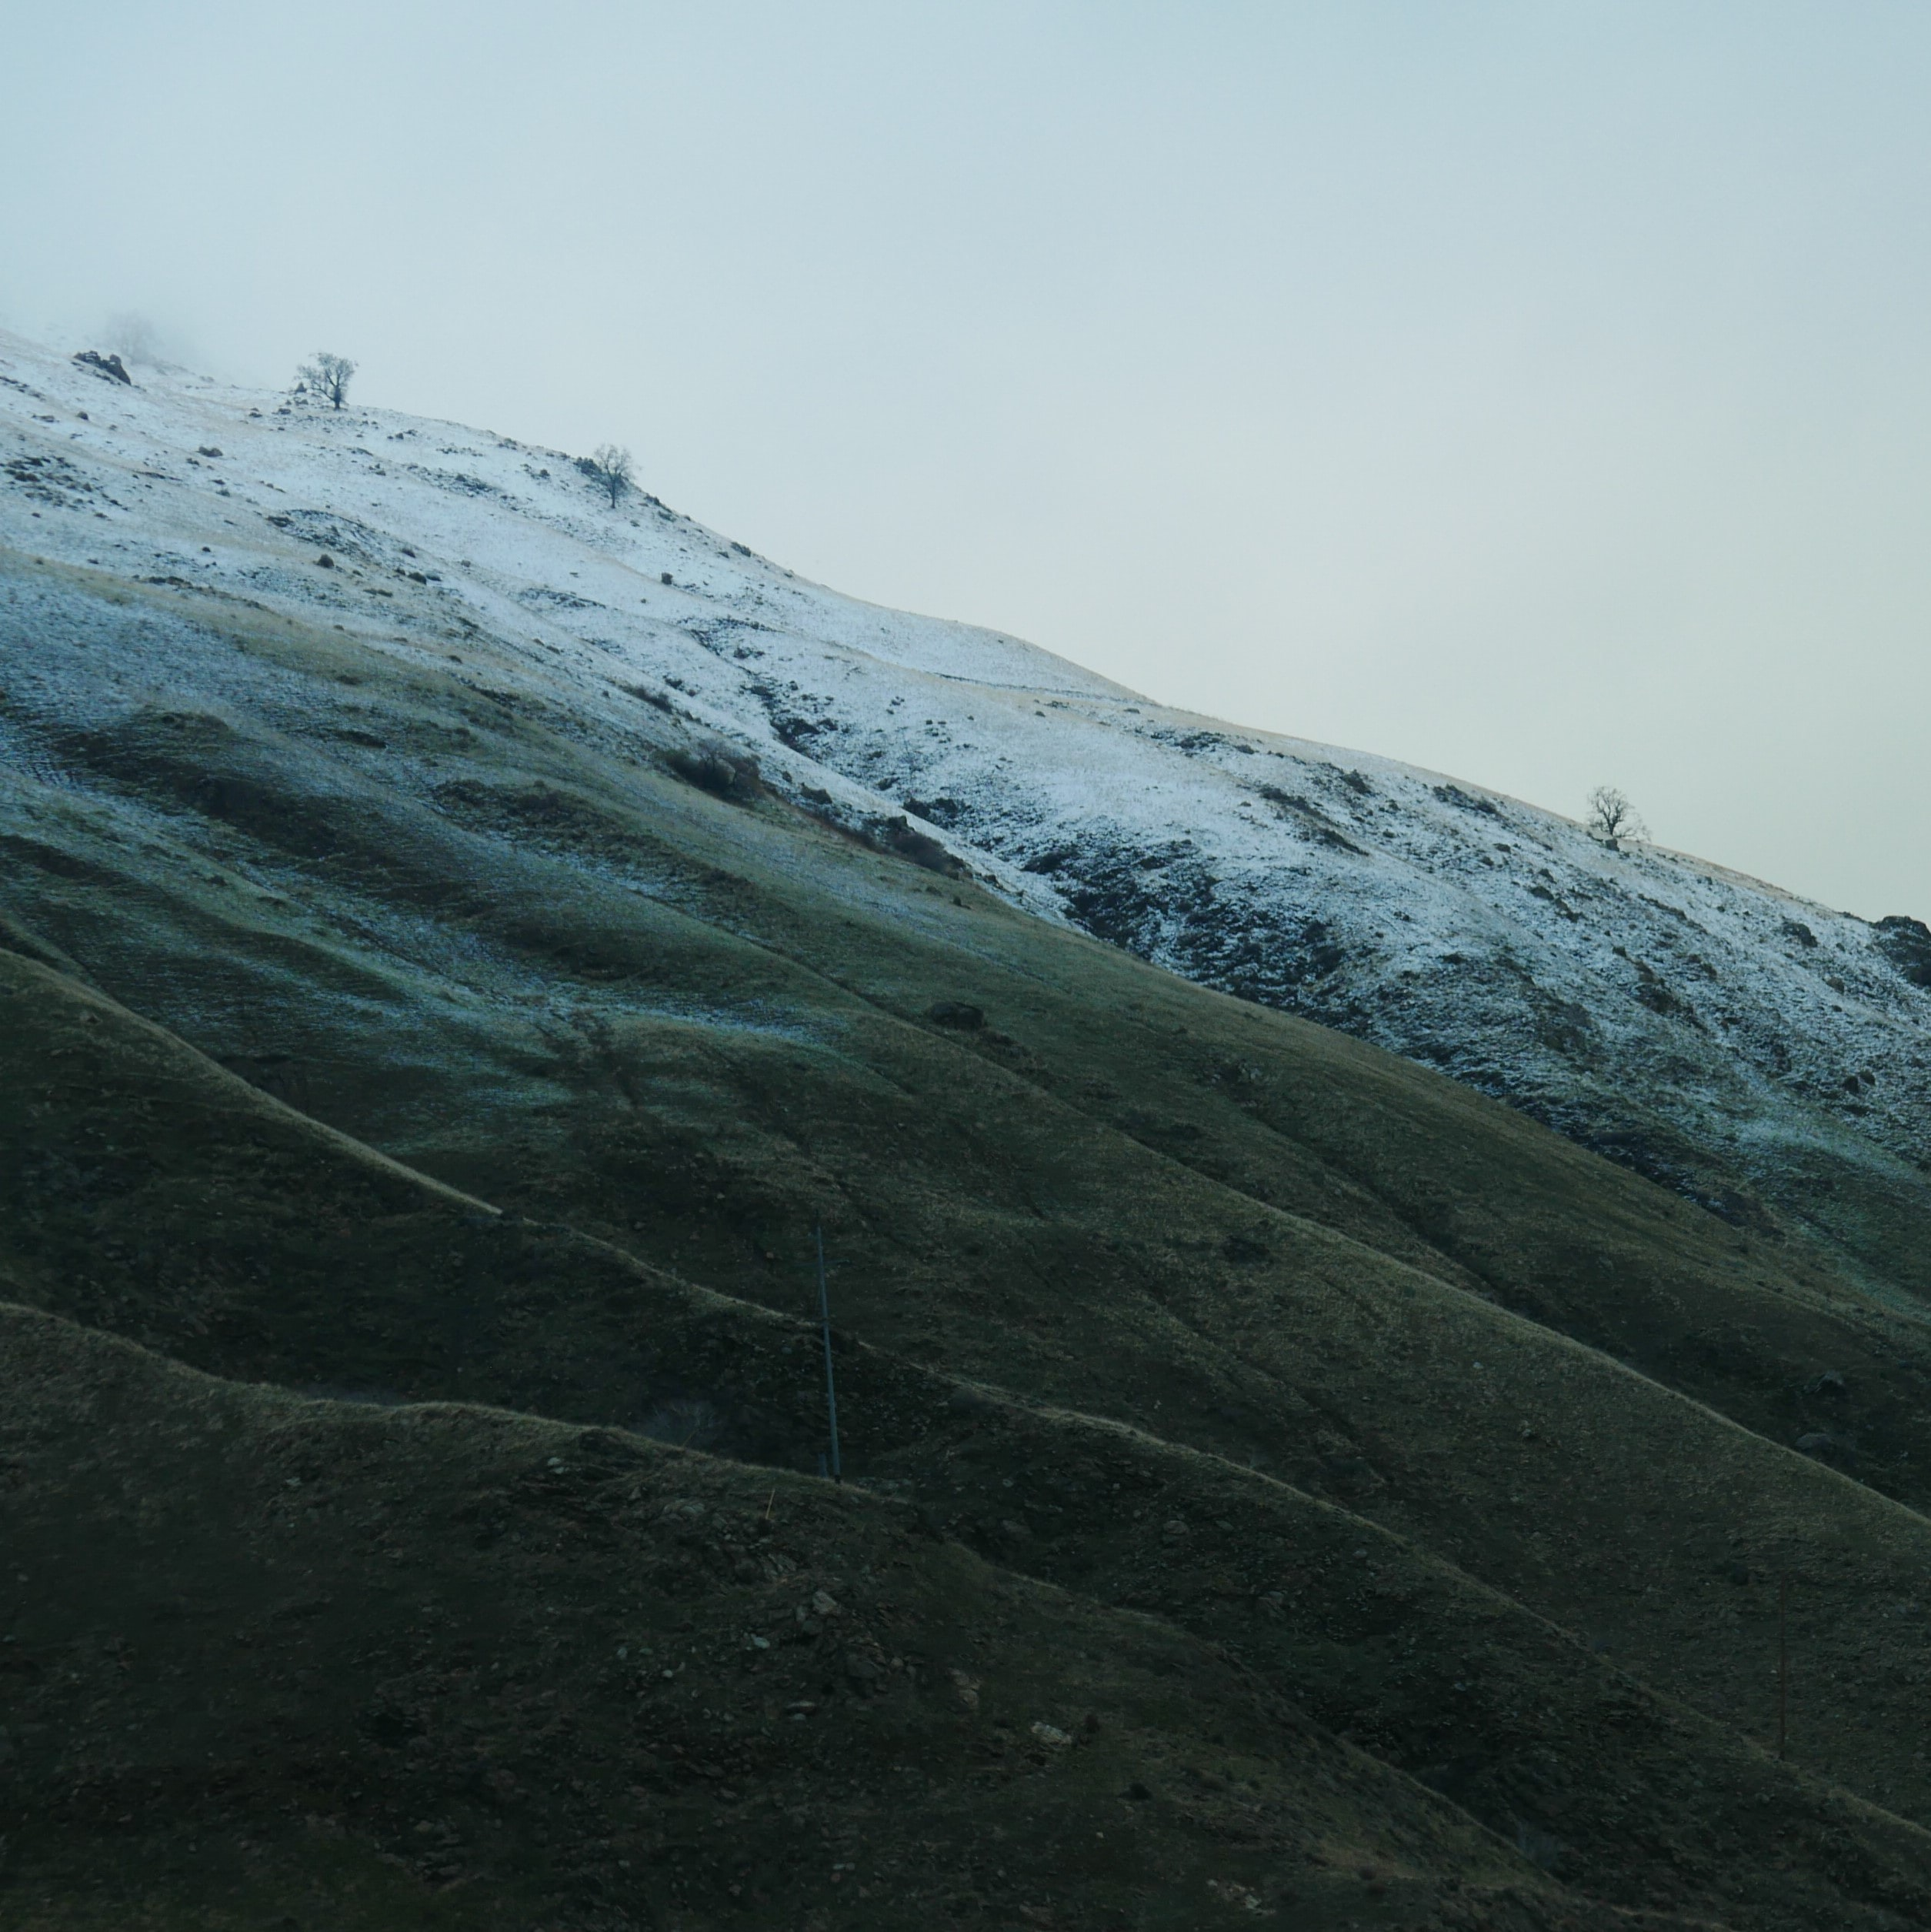 gray and white mountain with snow field